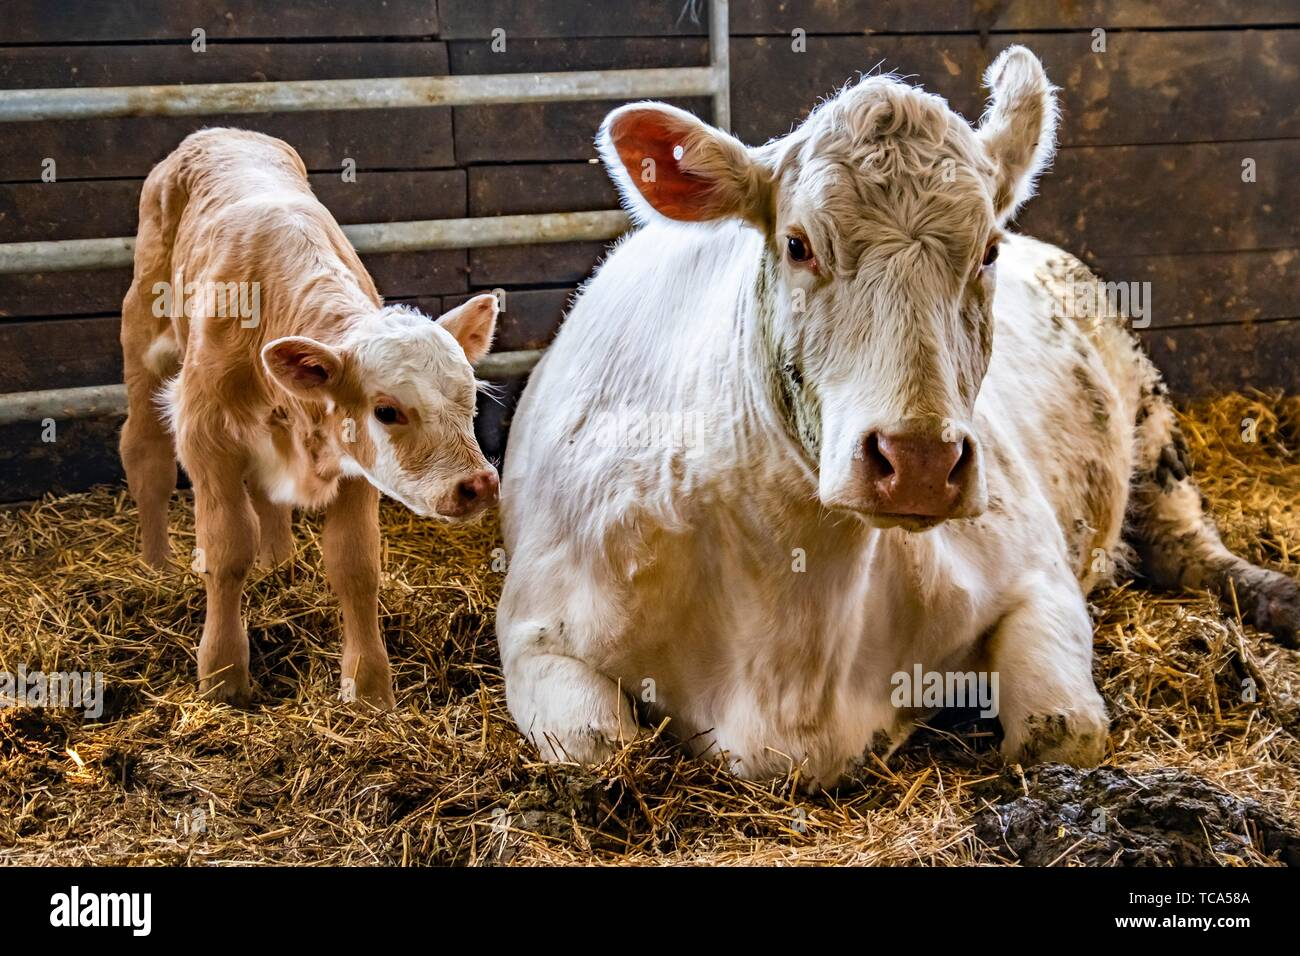 Newborn calf with mother cow in a barn in Sweden. - Stock Image